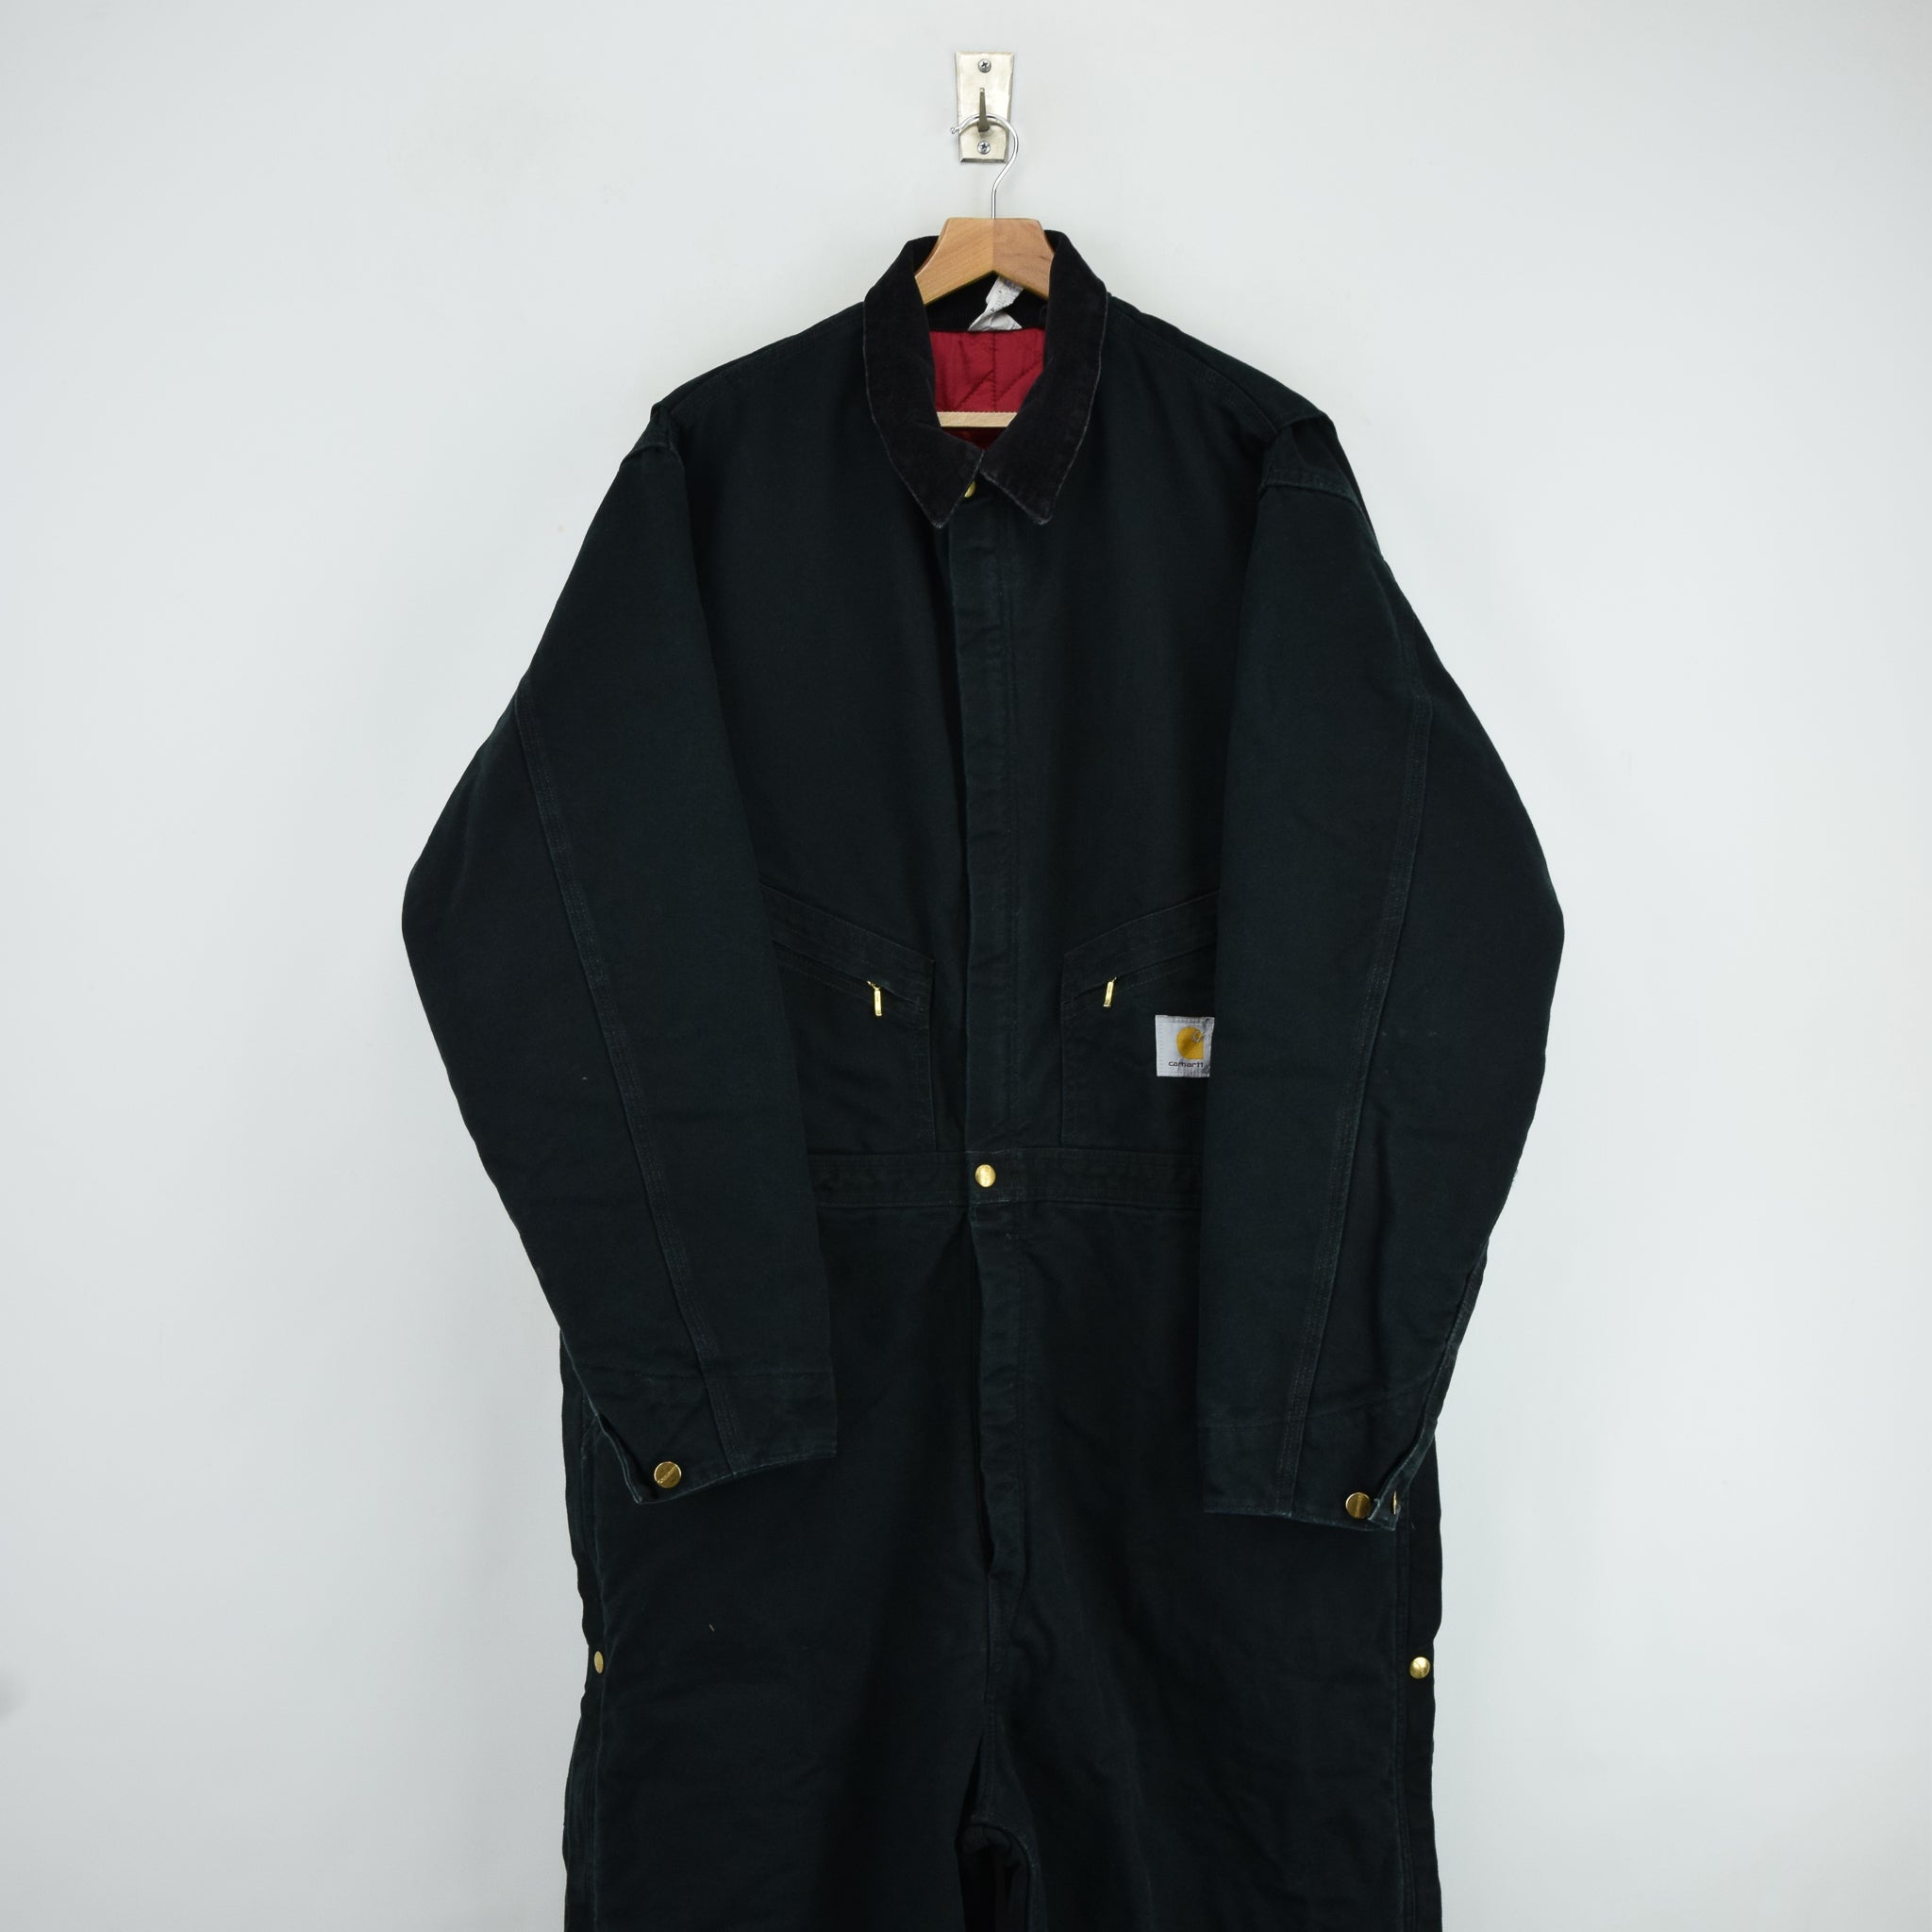 Vintage Carhartt Workwear Coverall Black Duck Canvas Boiler Suit 50 Tall 3XL FRONT